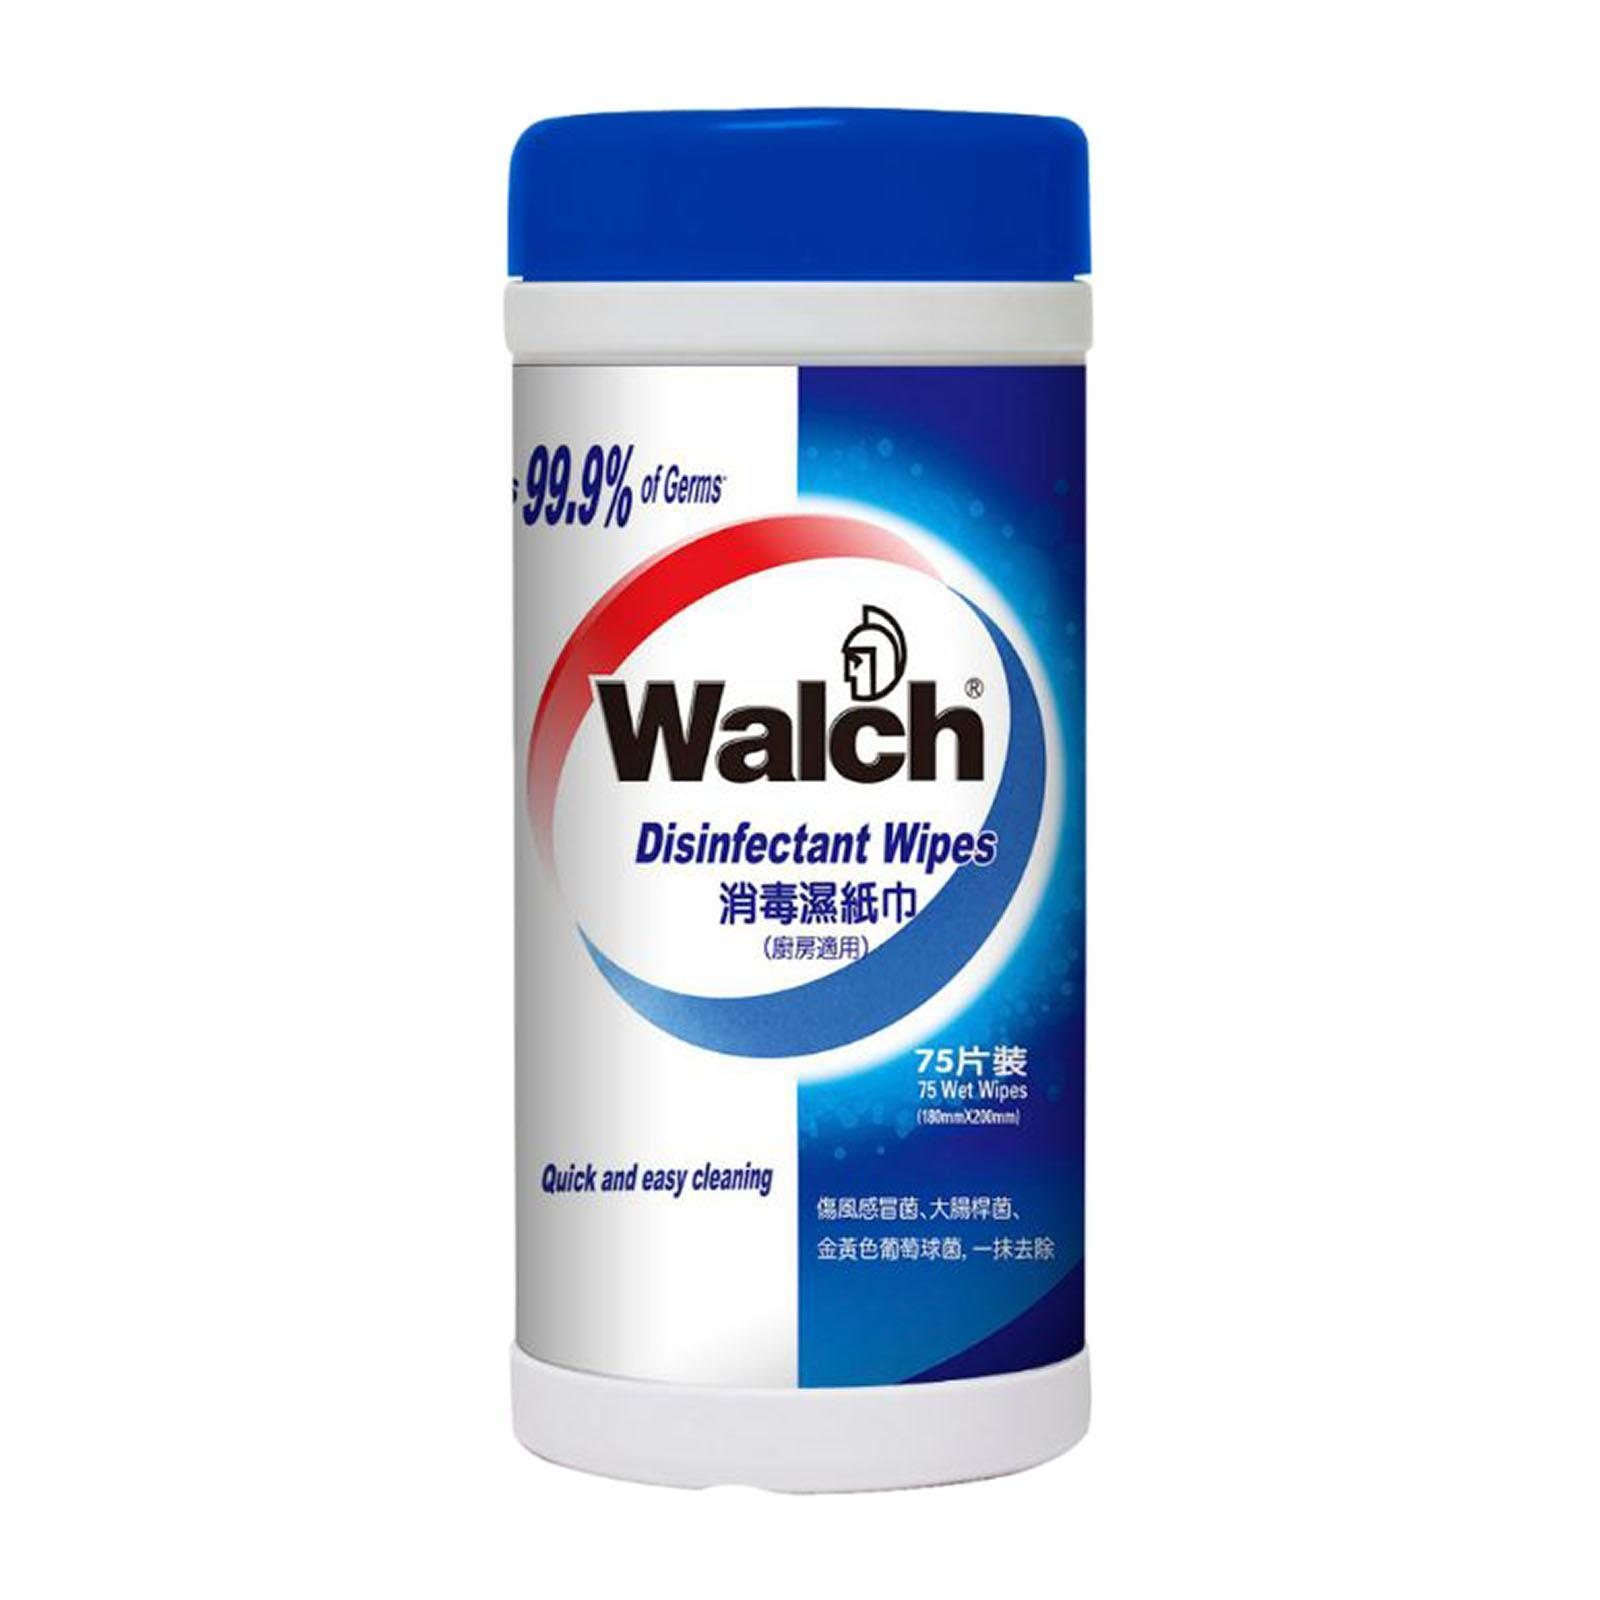 Walch Disinfectant Wipes 75pcs By Redmart.